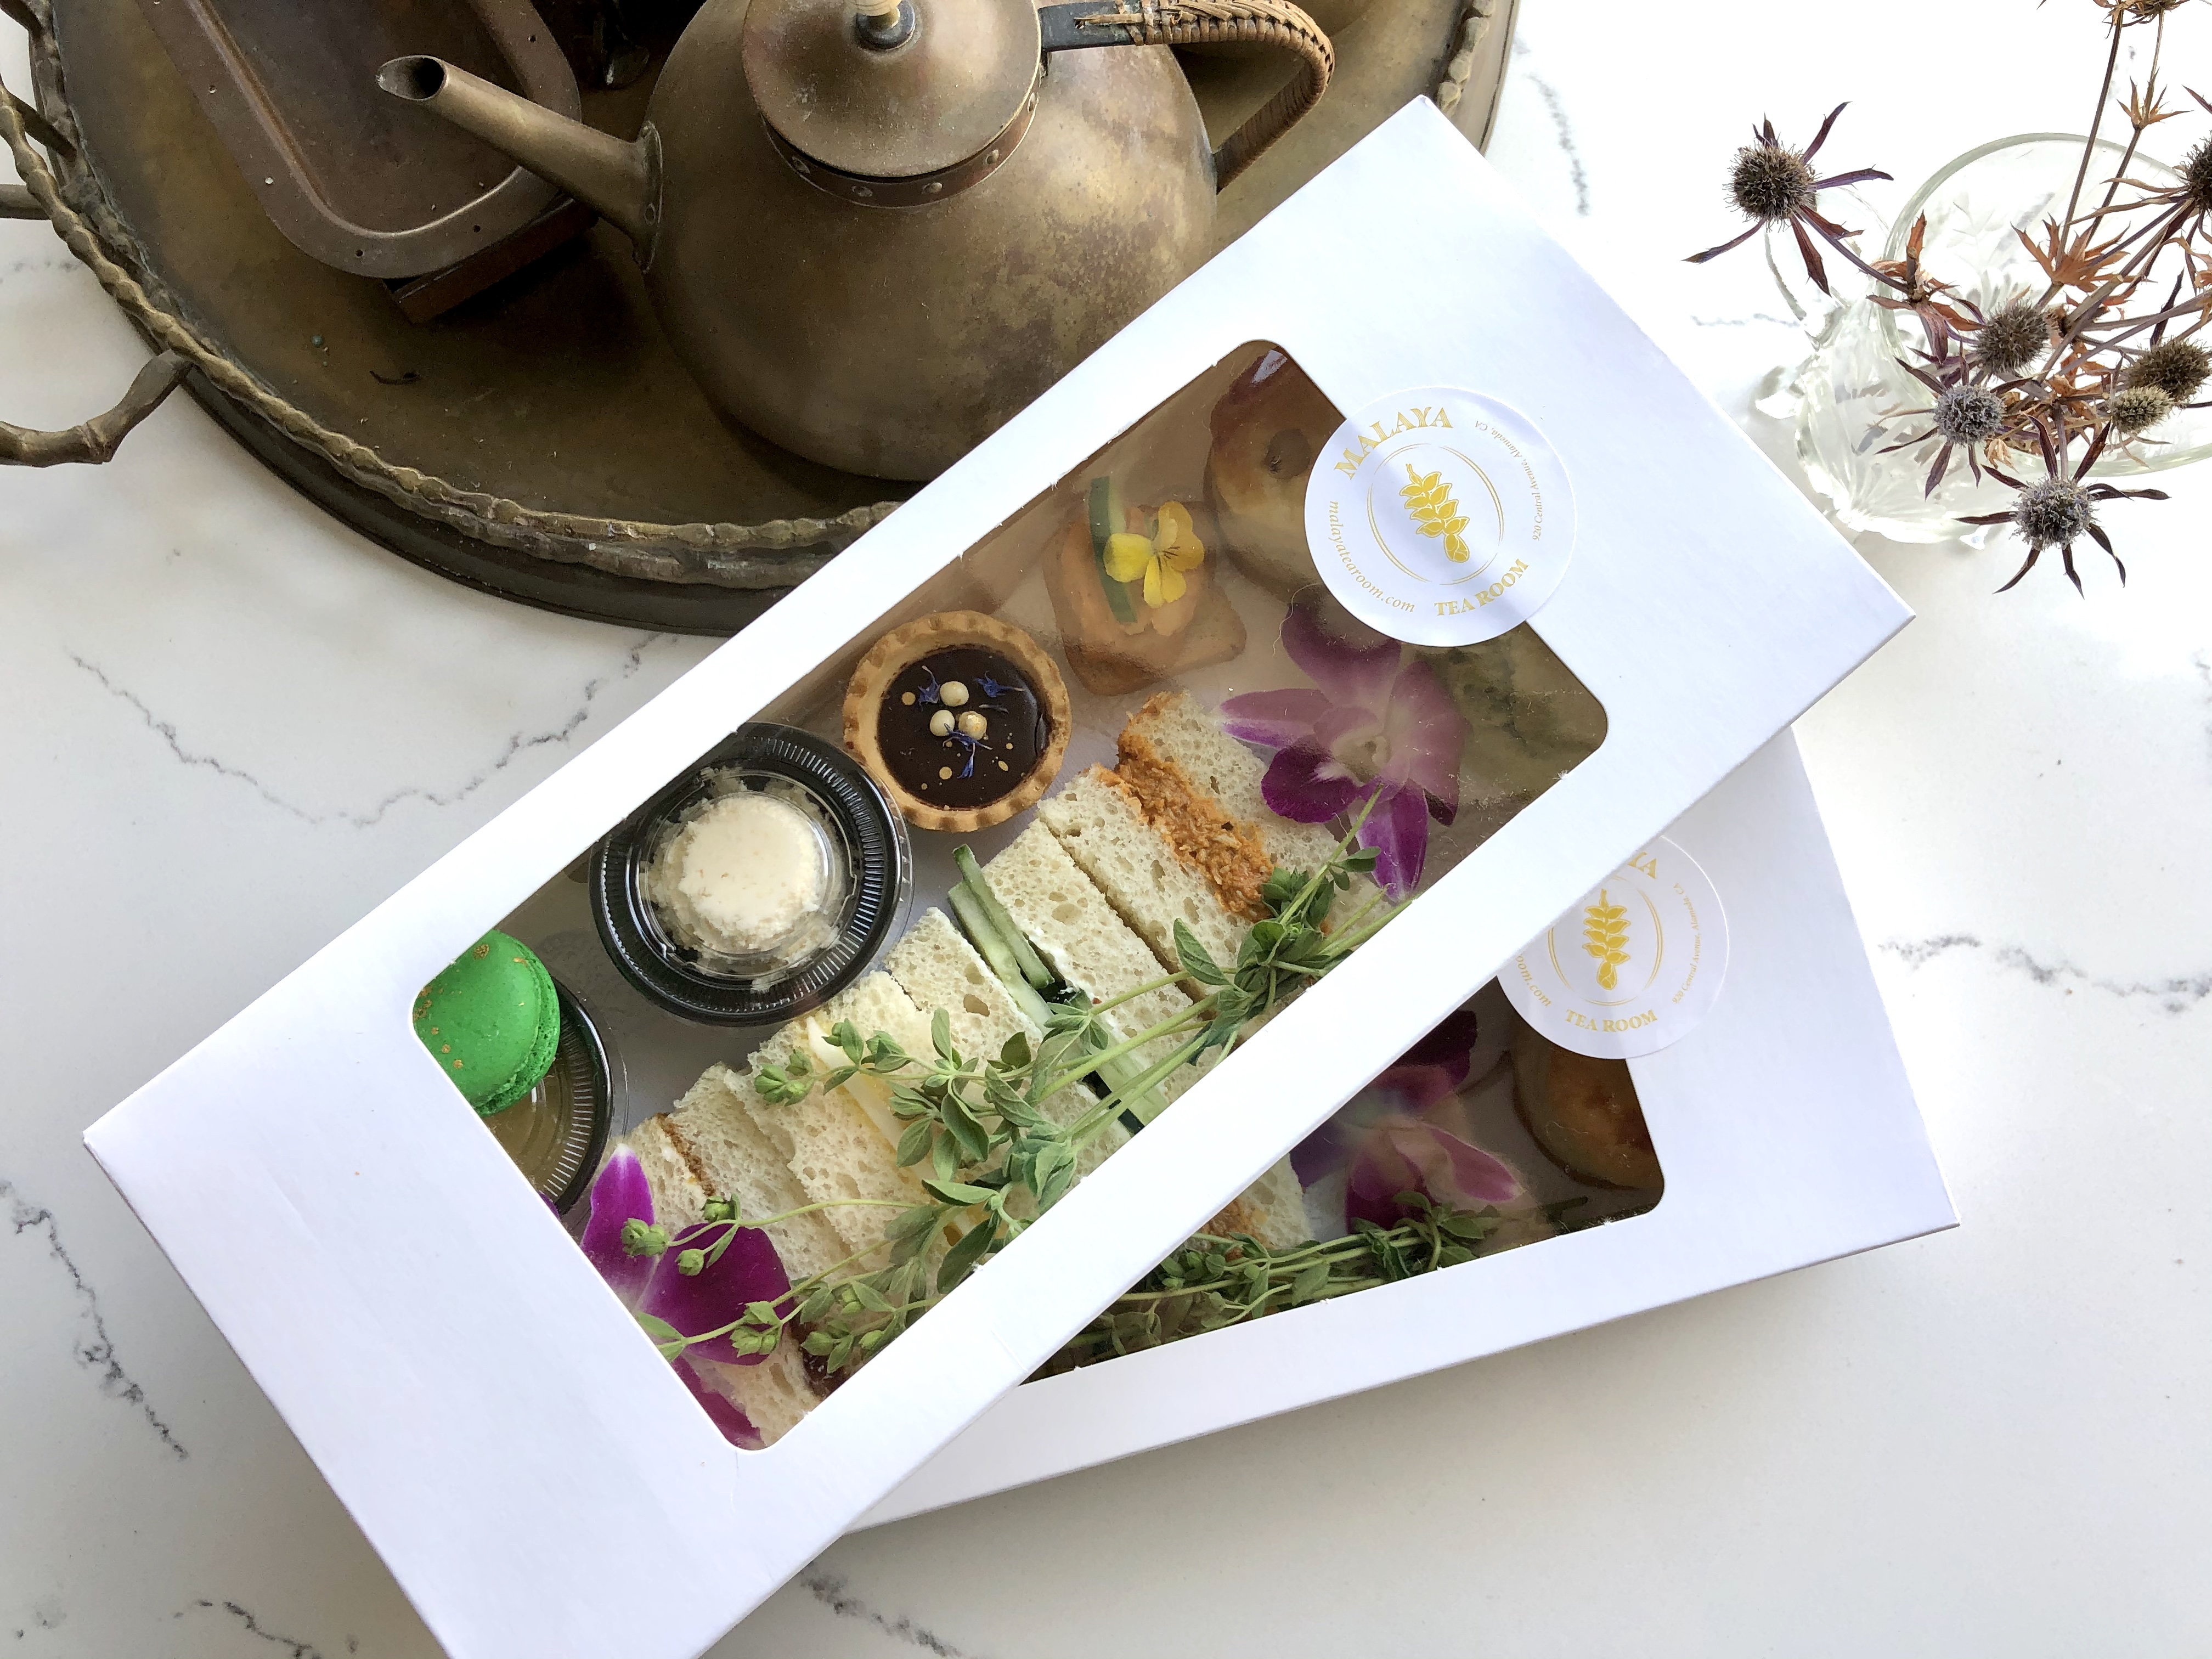 Malaya Tea Room's afternoon tea boxes packed up to go